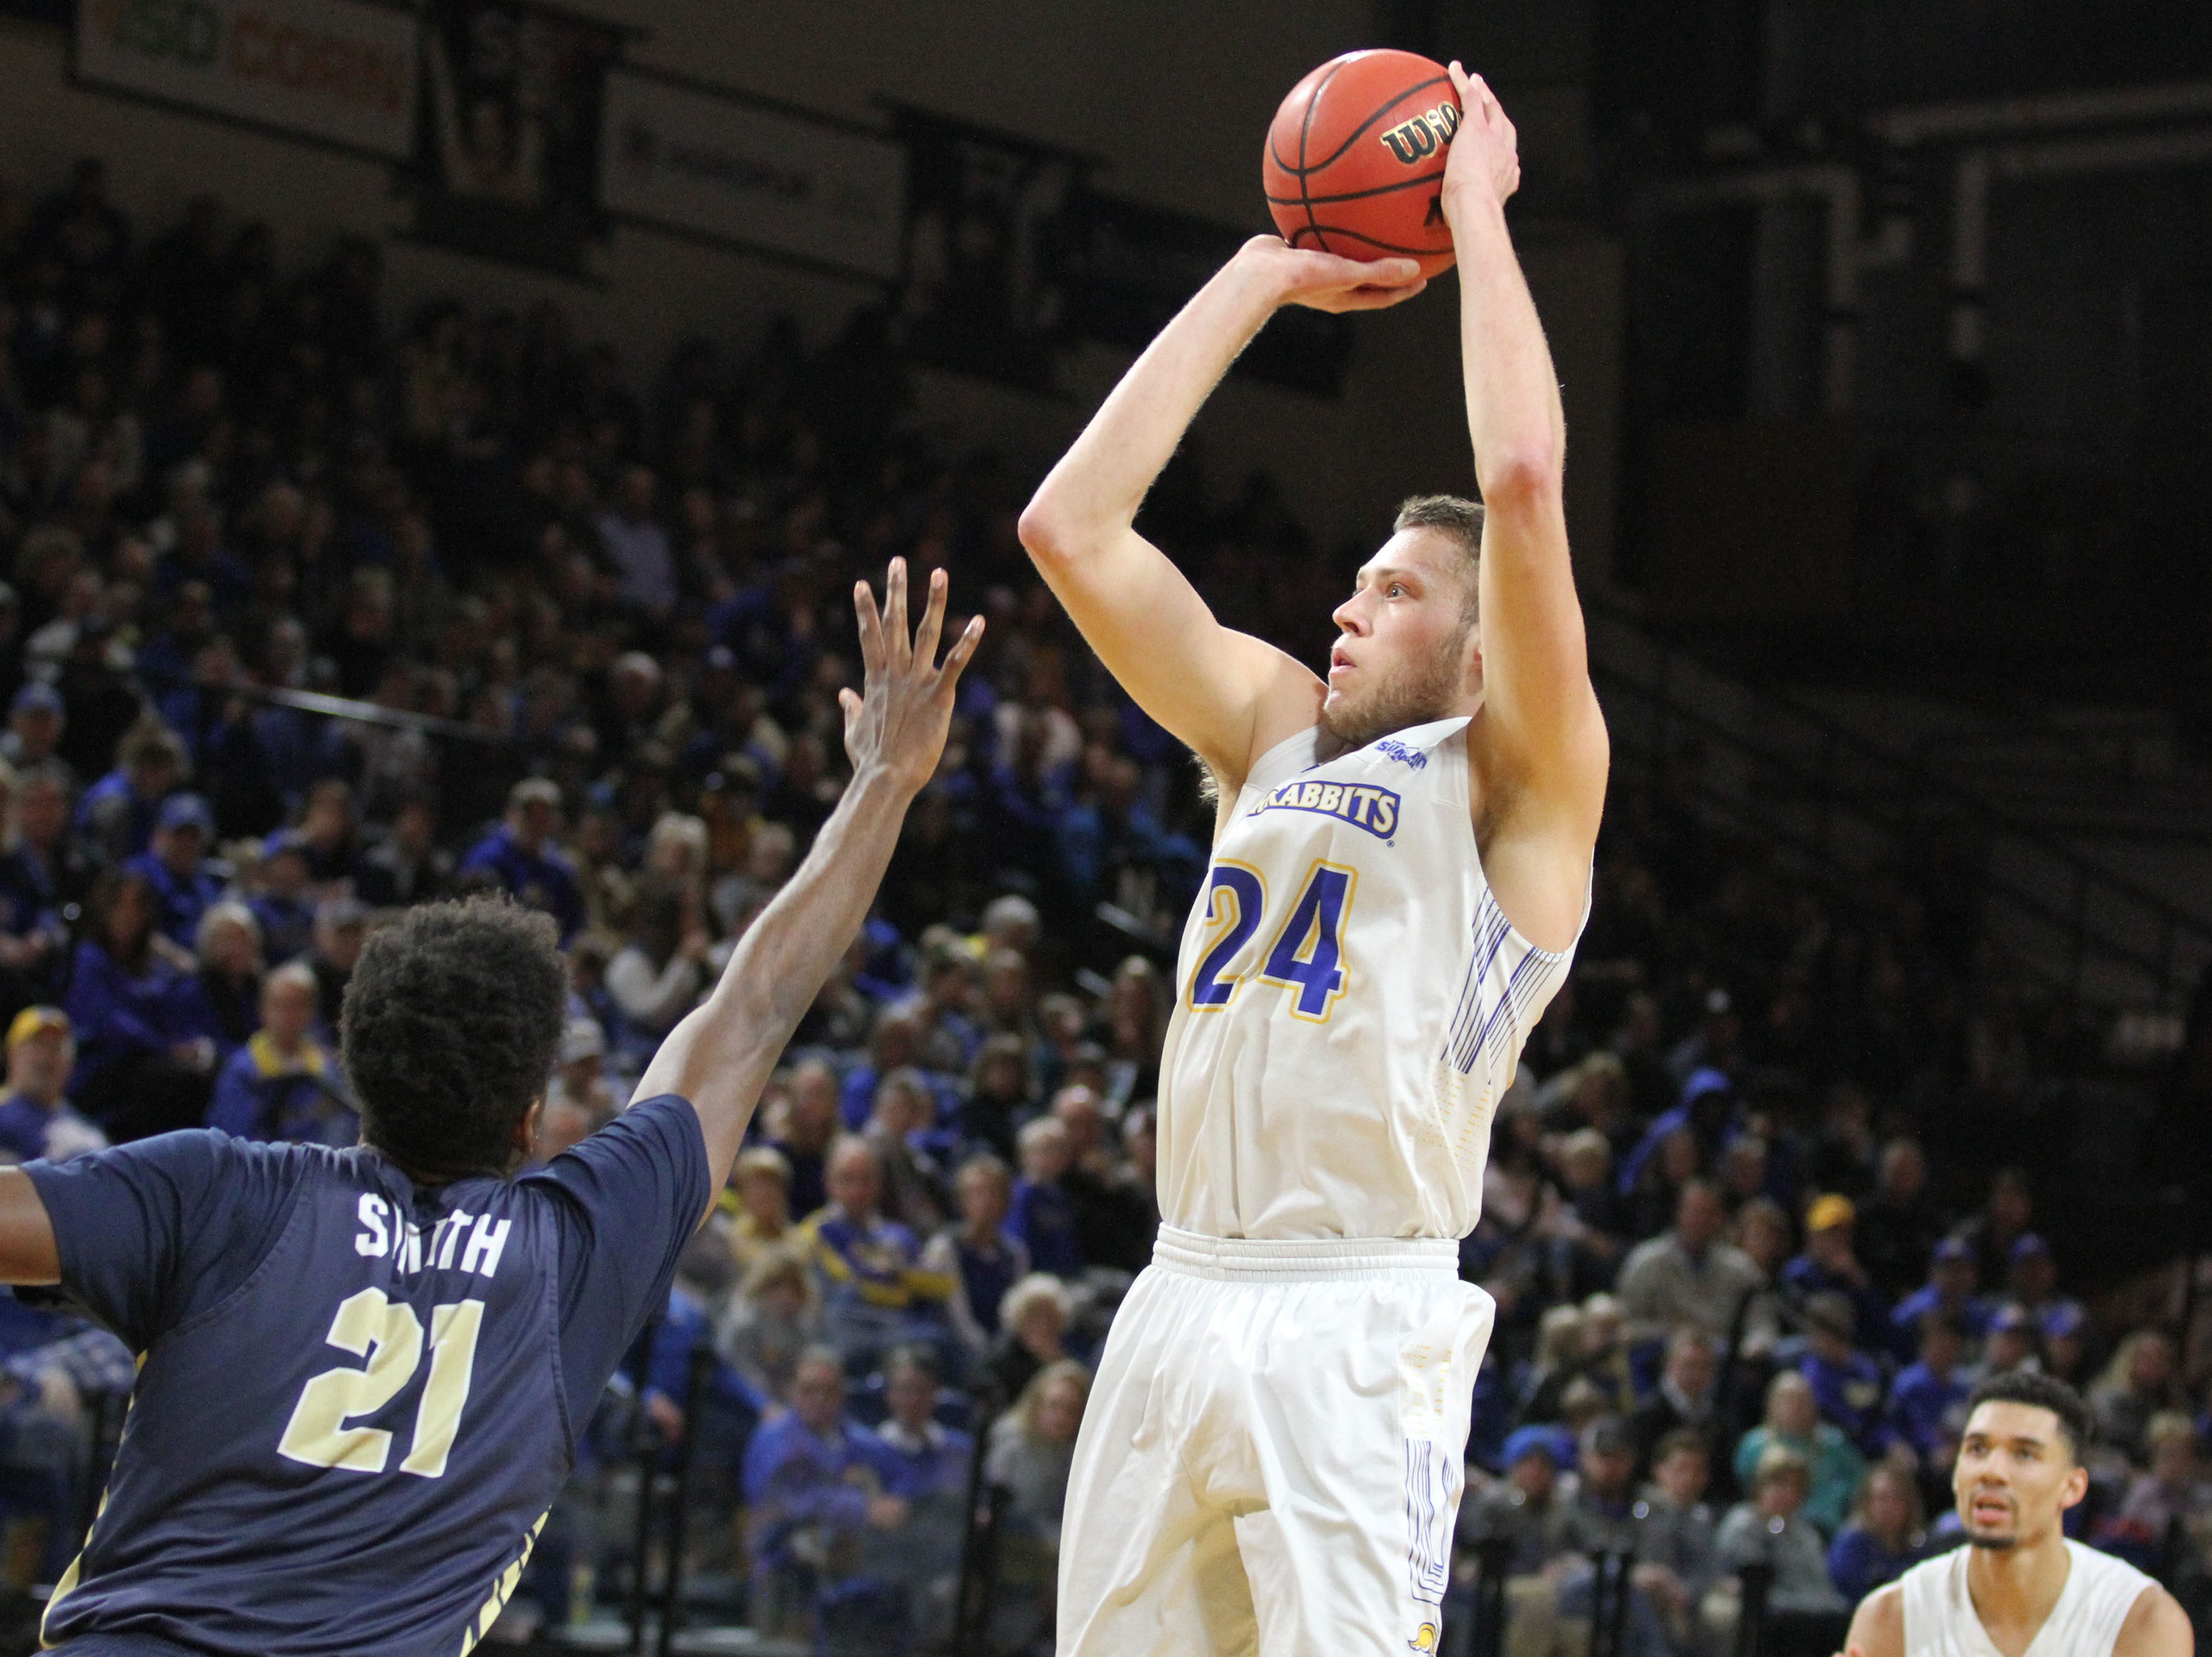 South Dakota State's Mike Daum (24) scores on a jumper in the paint over Oral Roberts' Kerwin Smith during the first half of the Jackrabbits' matchup with the Golden Eagles Saturday afternoon at Frost Arena in Brookings.